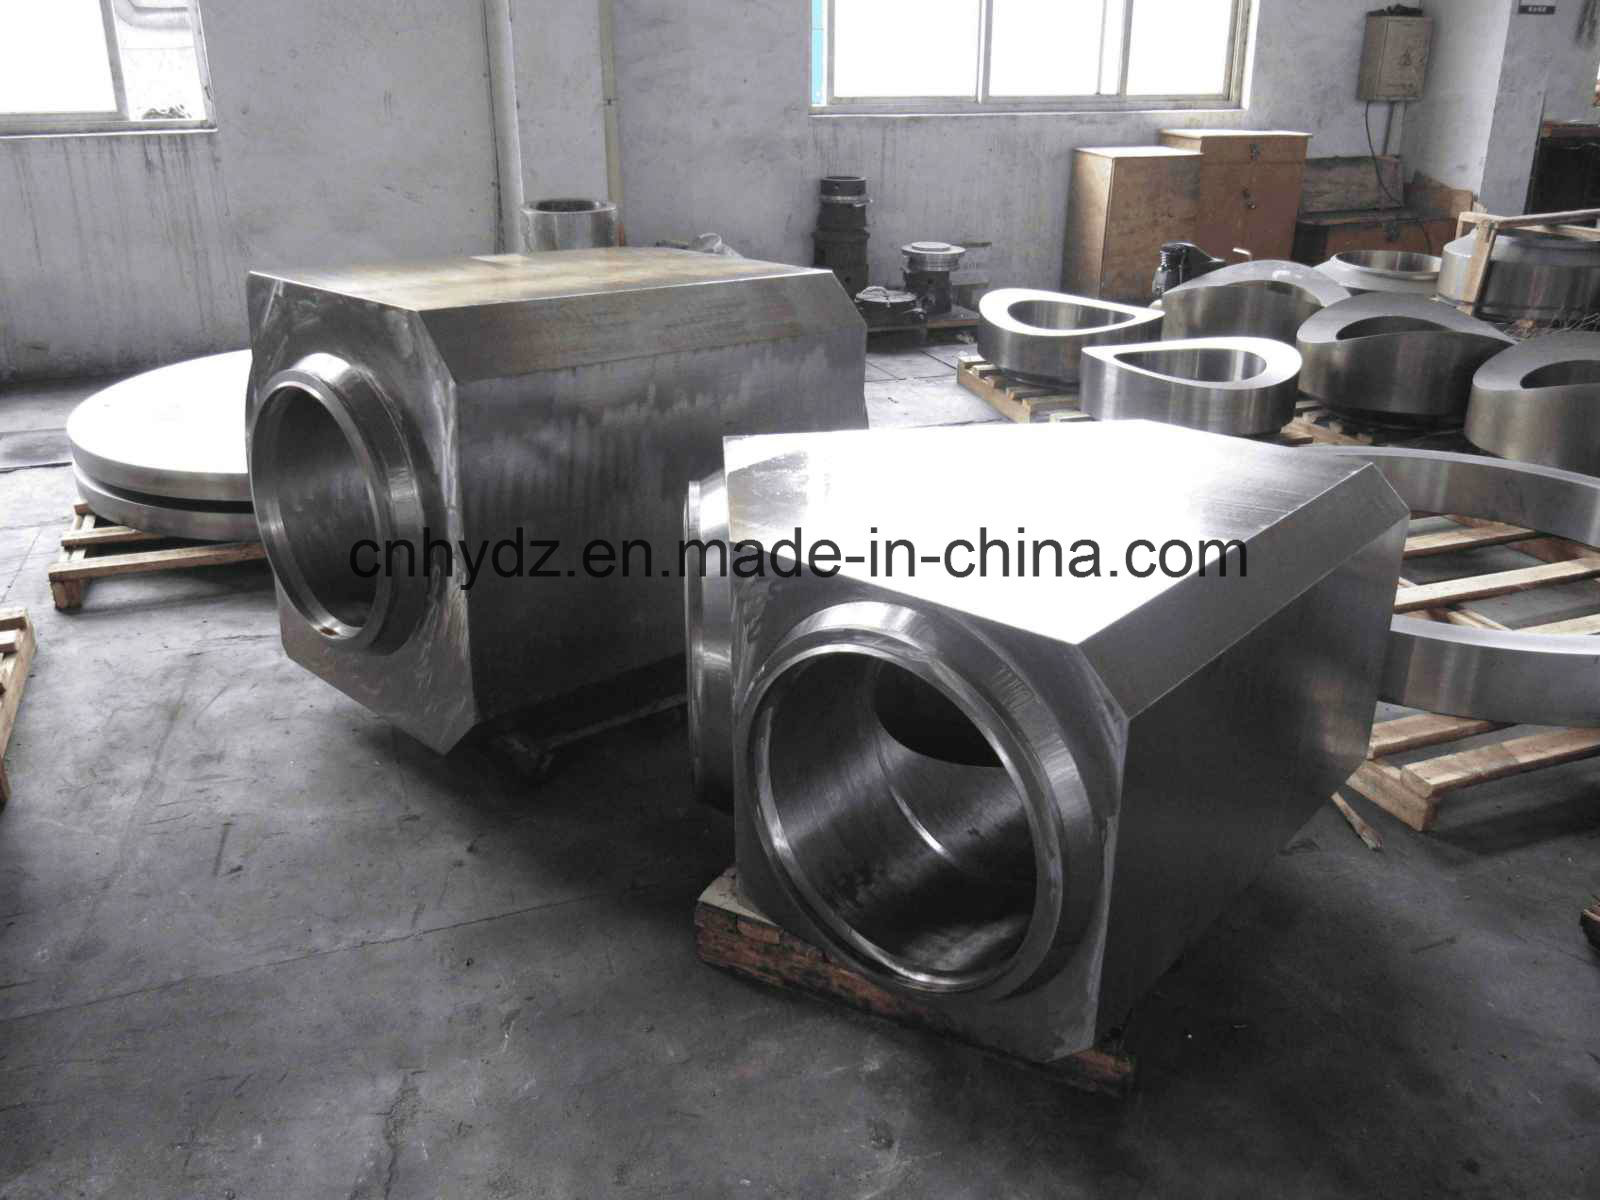 Stainless Steel SA182 F91 Hot Forged Valve Body